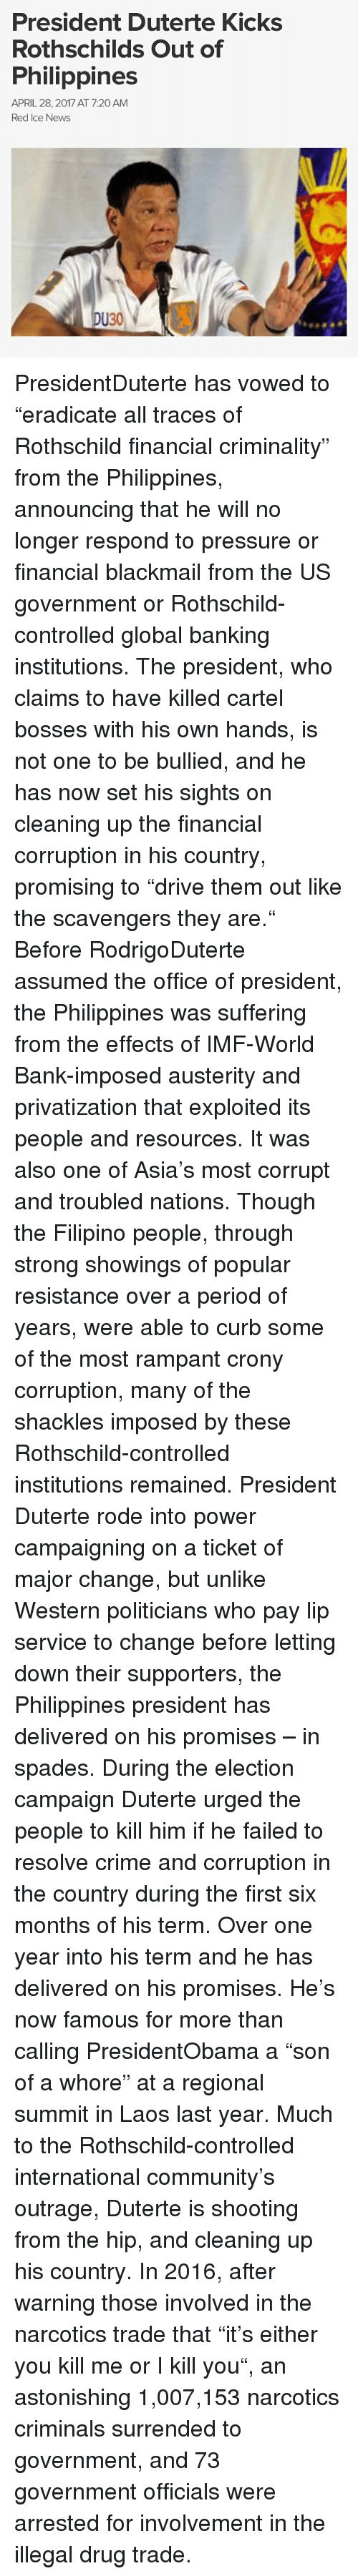 "laos: President Duterte Kicks  Rothschilds Out of  Philippines  APRIL 28, 2017 AT 7:20 AM  Red Ice News  DU30 PresidentDuterte has vowed to ""eradicate all traces of Rothschild financial criminality"" from the Philippines, announcing that he will no longer respond to pressure or financial blackmail from the US government or Rothschild-controlled global banking institutions. The president, who claims to have killed cartel bosses with his own hands, is not one to be bullied, and he has now set his sights on cleaning up the financial corruption in his country, promising to ""drive them out like the scavengers they are."" Before RodrigoDuterte assumed the office of president, the Philippines was suffering from the effects of IMF-World Bank-imposed austerity and privatization that exploited its people and resources. It was also one of Asia's most corrupt and troubled nations. Though the Filipino people, through strong showings of popular resistance over a period of years, were able to curb some of the most rampant crony corruption, many of the shackles imposed by these Rothschild-controlled institutions remained. President Duterte rode into power campaigning on a ticket of major change, but unlike Western politicians who pay lip service to change before letting down their supporters, the Philippines president has delivered on his promises – in spades. During the election campaign Duterte urged the people to kill him if he failed to resolve crime and corruption in the country during the first six months of his term. Over one year into his term and he has delivered on his promises. He's now famous for more than calling PresidentObama a ""son of a whore"" at a regional summit in Laos last year. Much to the Rothschild-controlled international community's outrage, Duterte is shooting from the hip, and cleaning up his country. In 2016, after warning those involved in the narcotics trade that ""it's either you kill me or I kill you"", an astonishing 1,007,153 narcotics criminals surrended to government, and 73 government officials were arrested for involvement in the illegal drug trade."